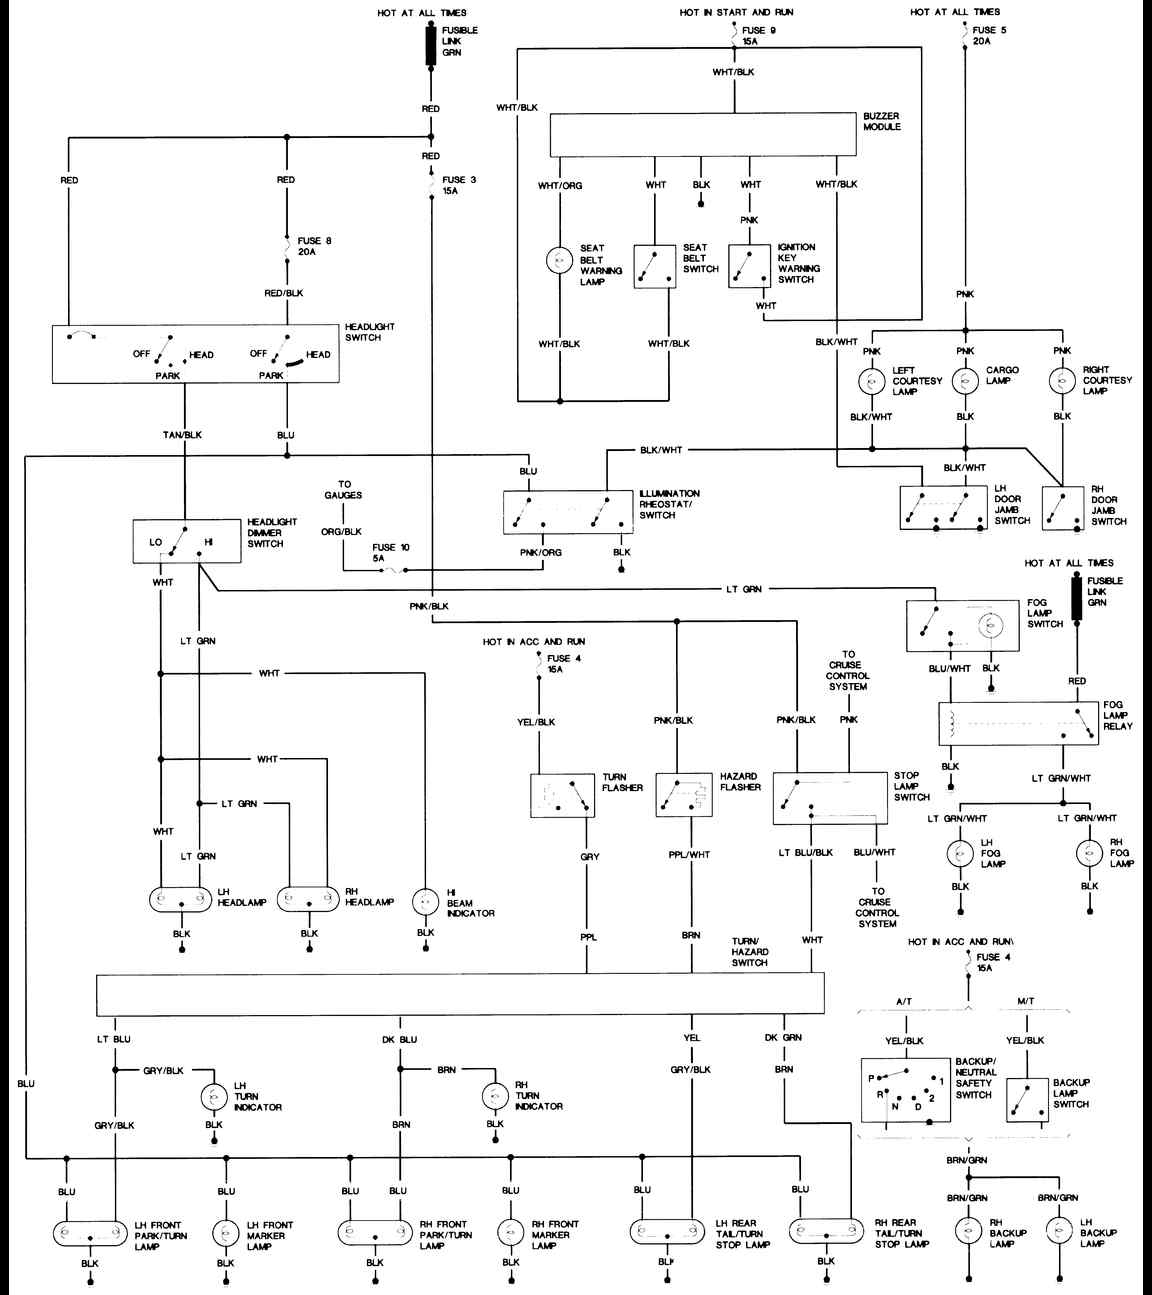 http://www freeautomechanic com/wiring-diagrams/jeep/1988/1988-jeep -wrangler-body-2 jpg